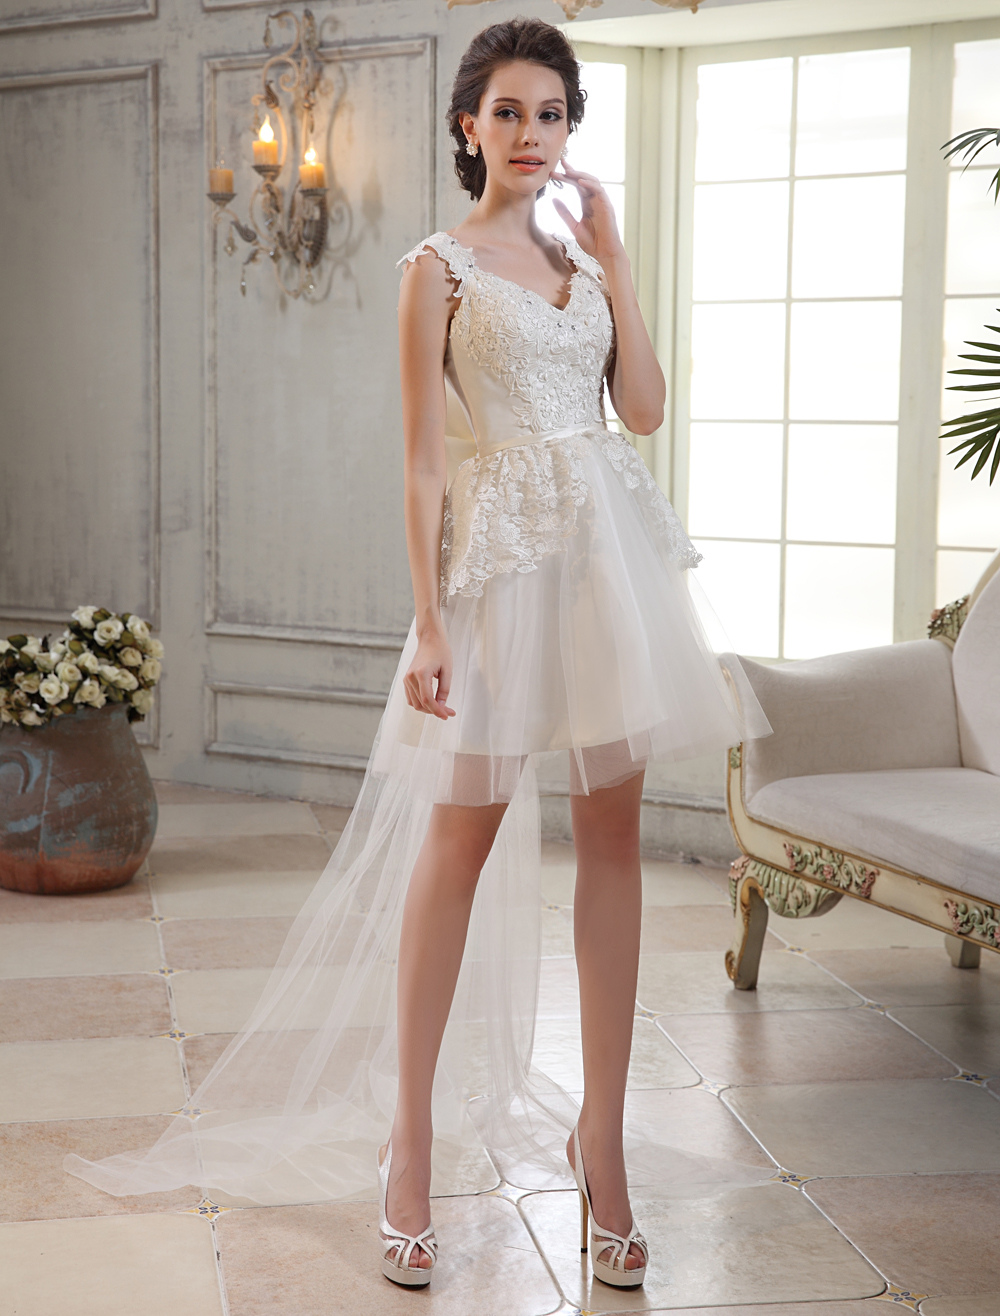 Chic Ivory Lace V-Neck Sleeveless A-line Tulle Bridal Wedding Gown  Milanoo